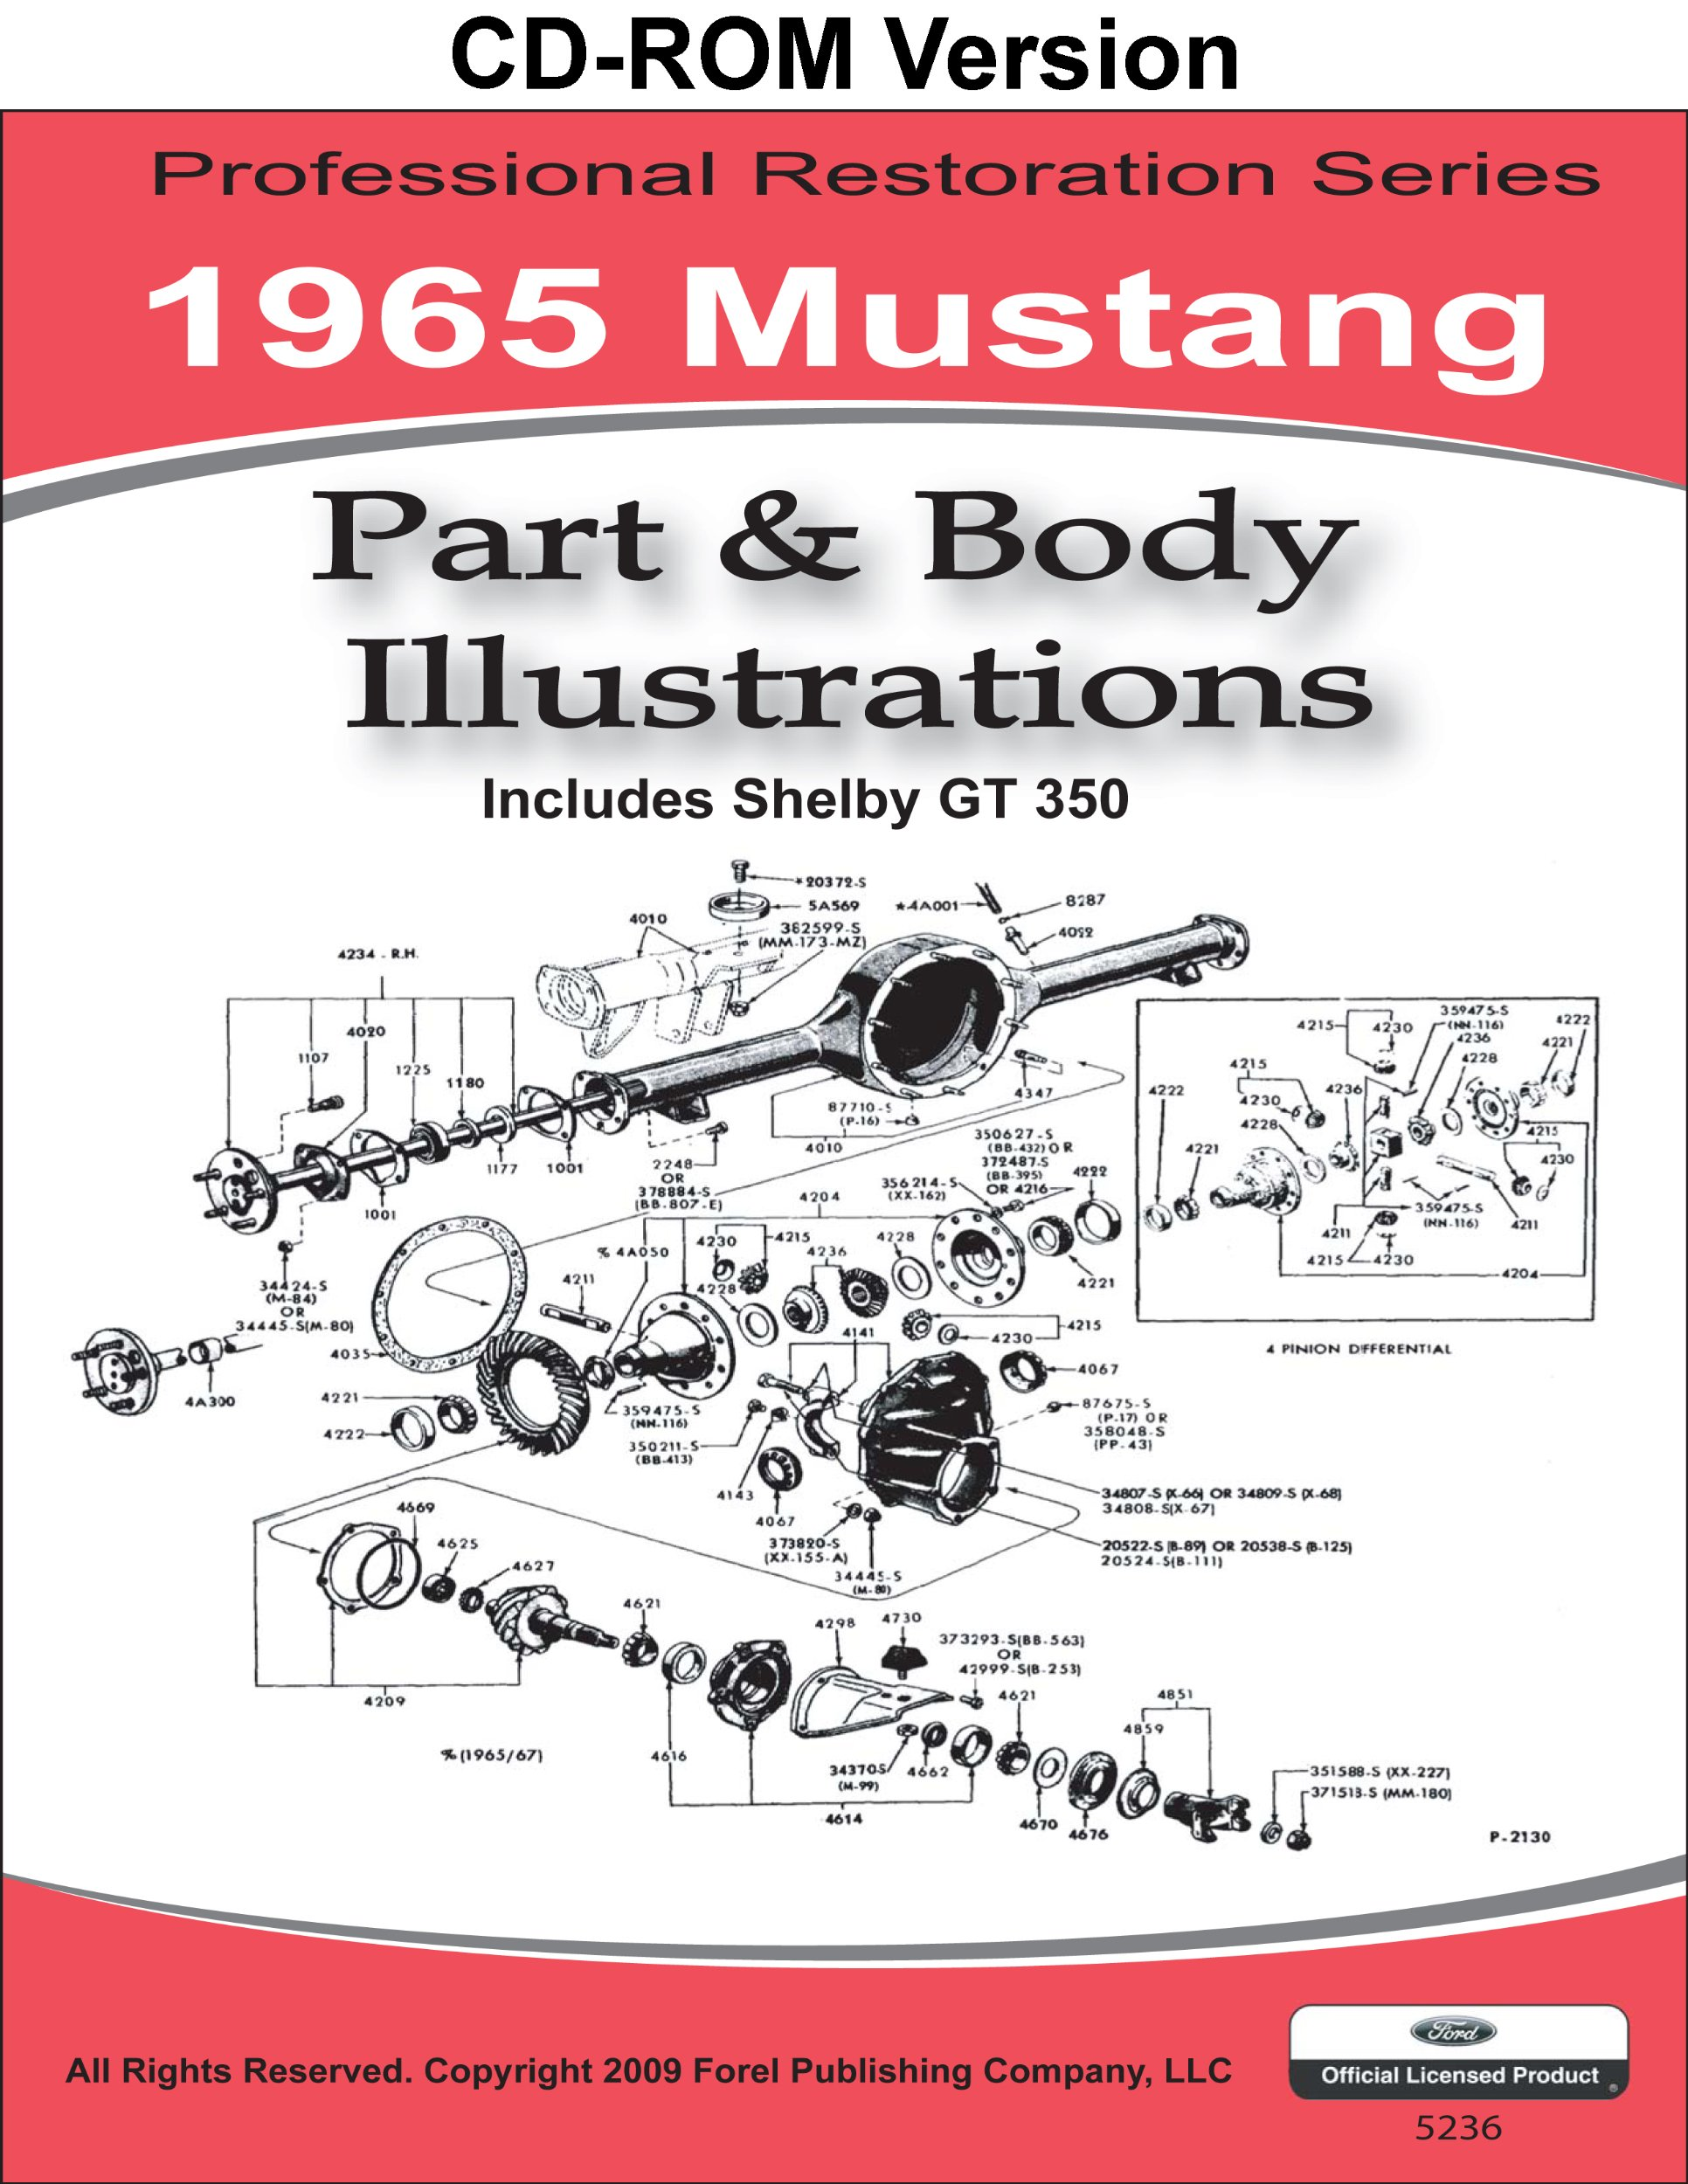 1965 mustang part and body illustrations multimedia cd may 1 2009